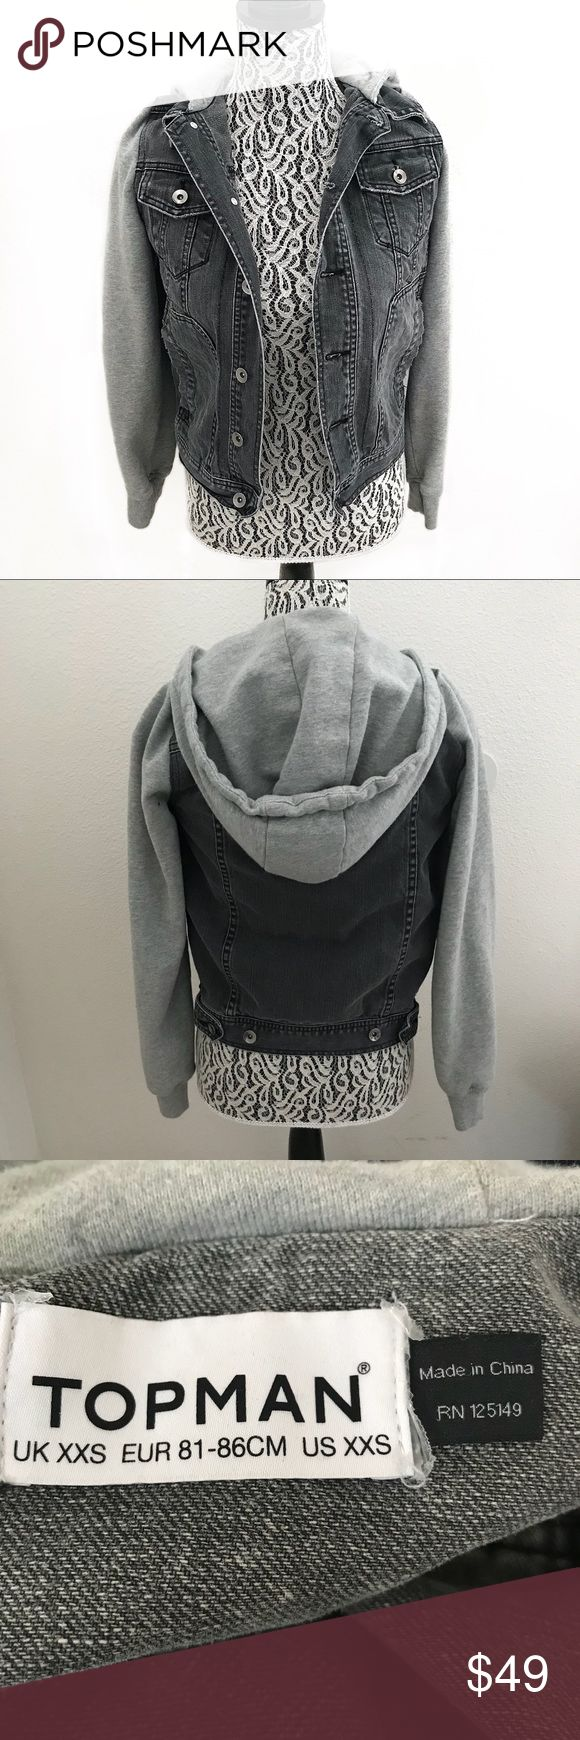 """TOPMAN jeans denim jacket / cotton sleeves XXS TOPMAN jeans denim jacket / cotton sleeves XXS  Pit to pit 17"""" Sleeve 26"""" Shoulder 14"""" Length 23""""  There is no option XXS so I put XS. Please refer to measurements to ensure proper fit. Topman Jackets & Coats Lightweight & Shirt Jackets"""